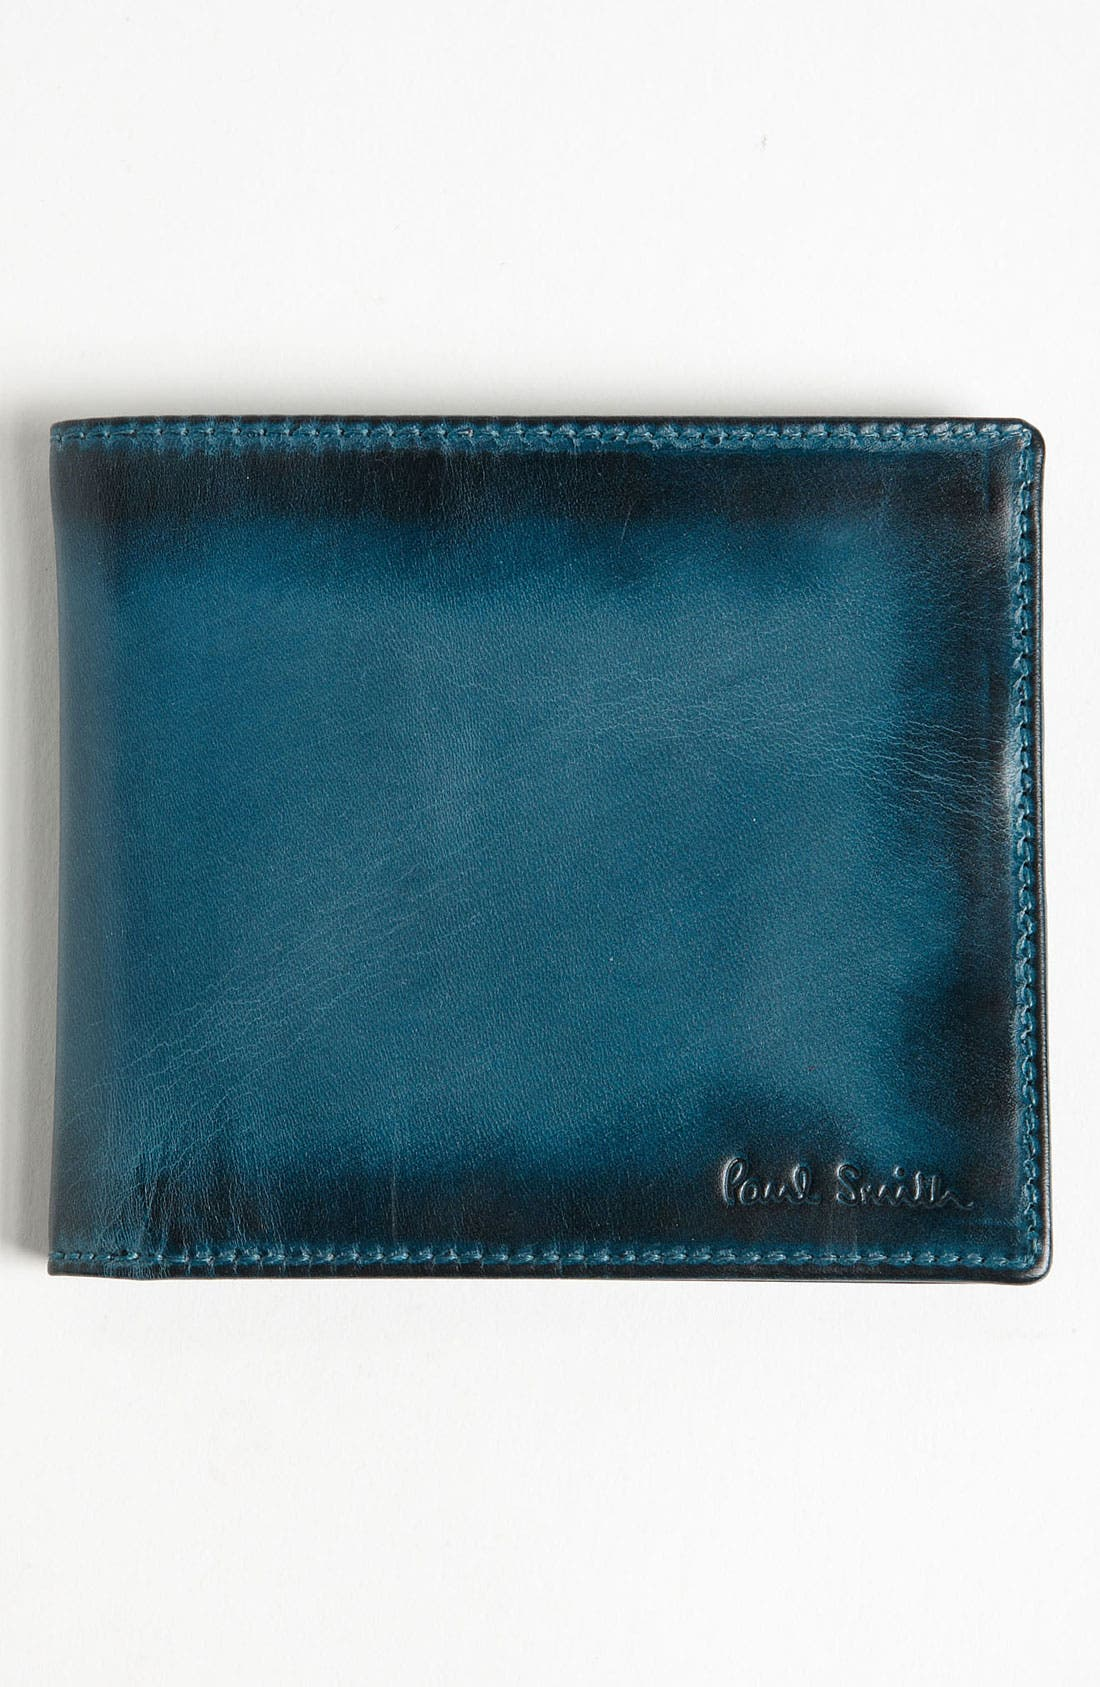 Main Image - Paul Smith Accessories Billfold Wallet